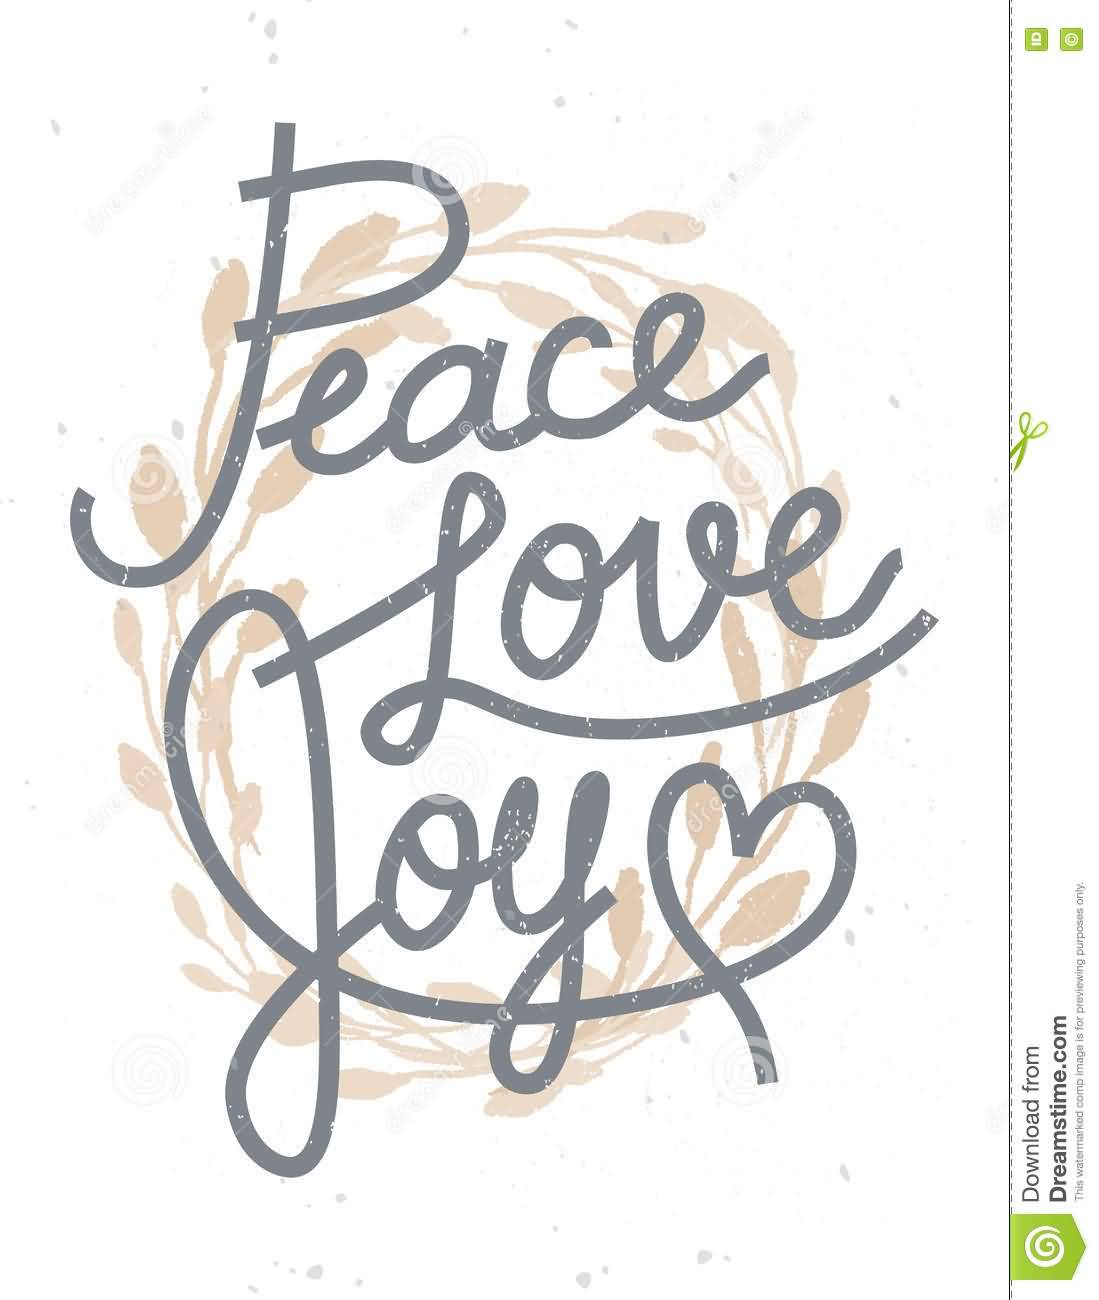 Peace And Joy Quotes: 20 Peace Love Joy Quotes Sayings Images & Photos